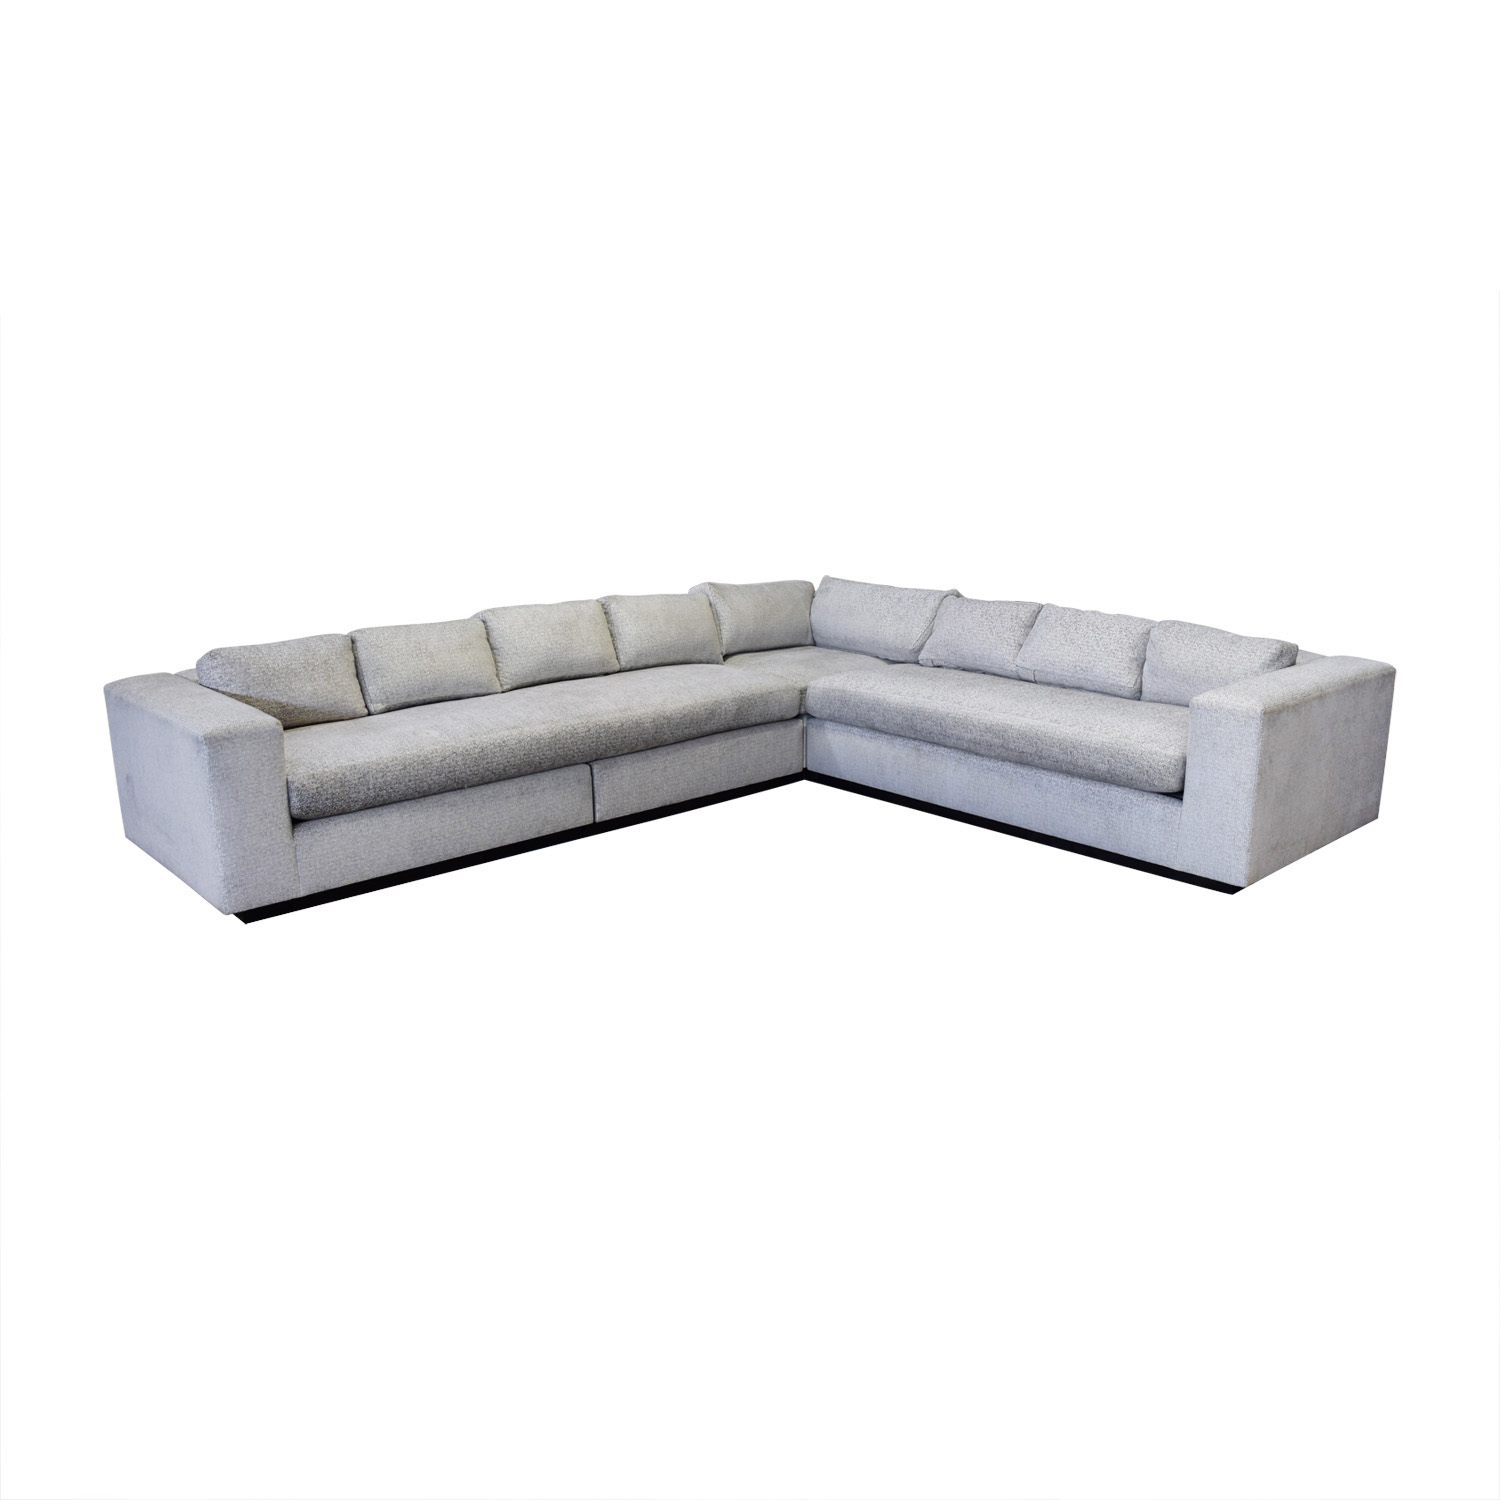 Ferrell Mittman Ferrell Mittman Cooper Sectional Sofa for sale